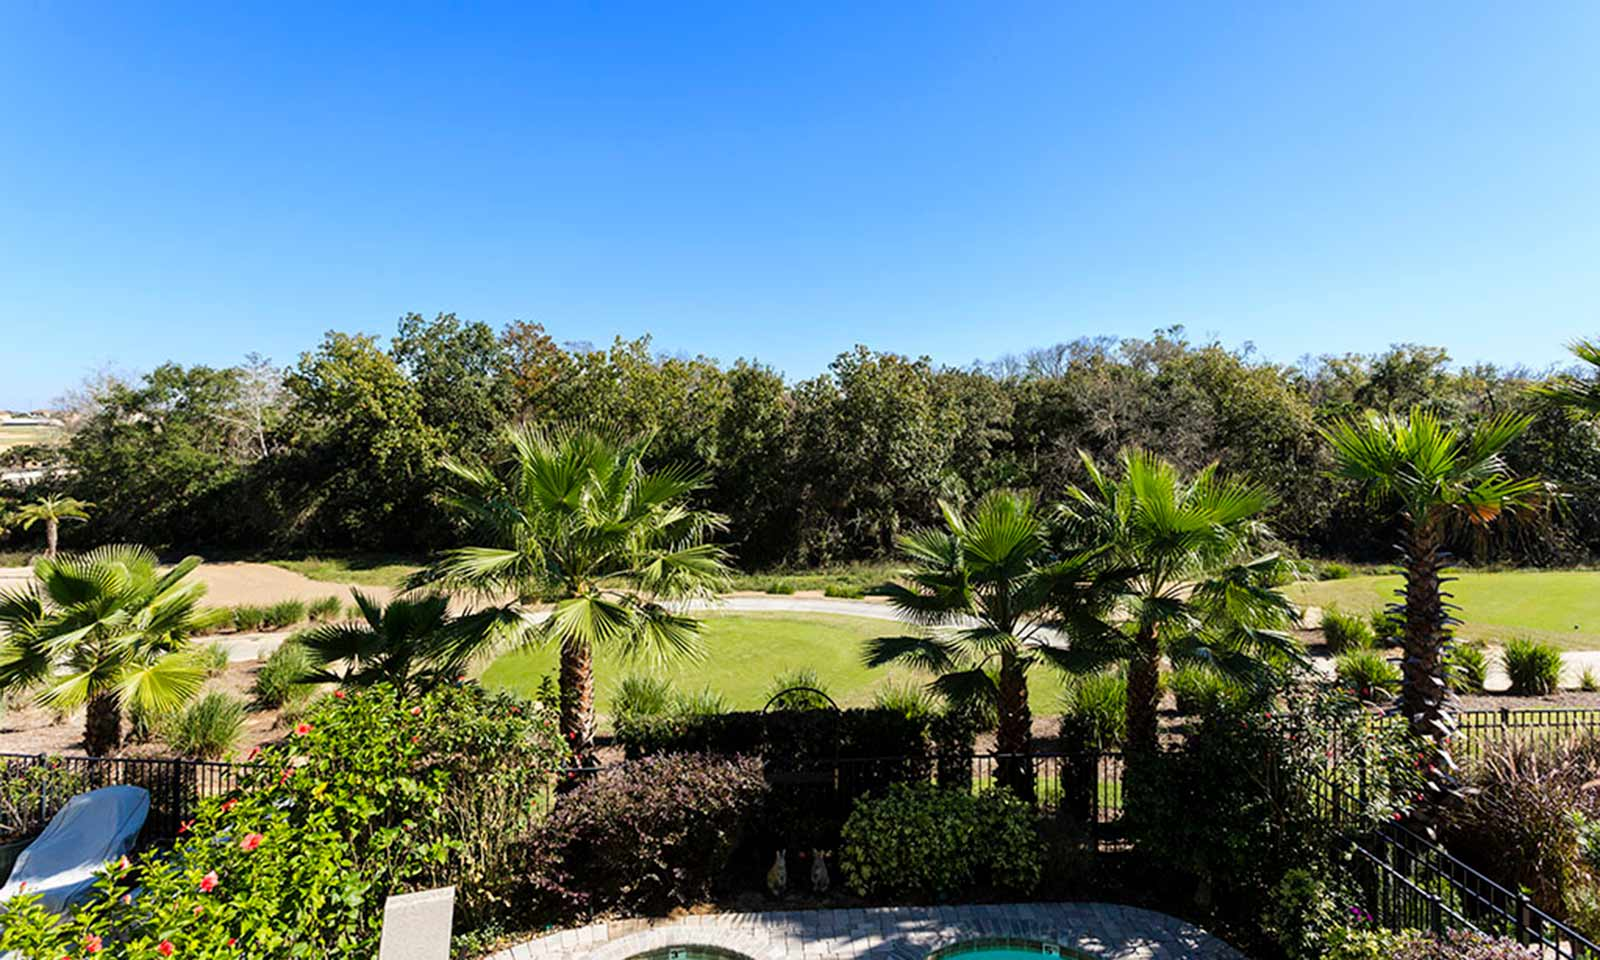 [amenities:Balcony-with-Golf-View:3] Balcony with Golf View